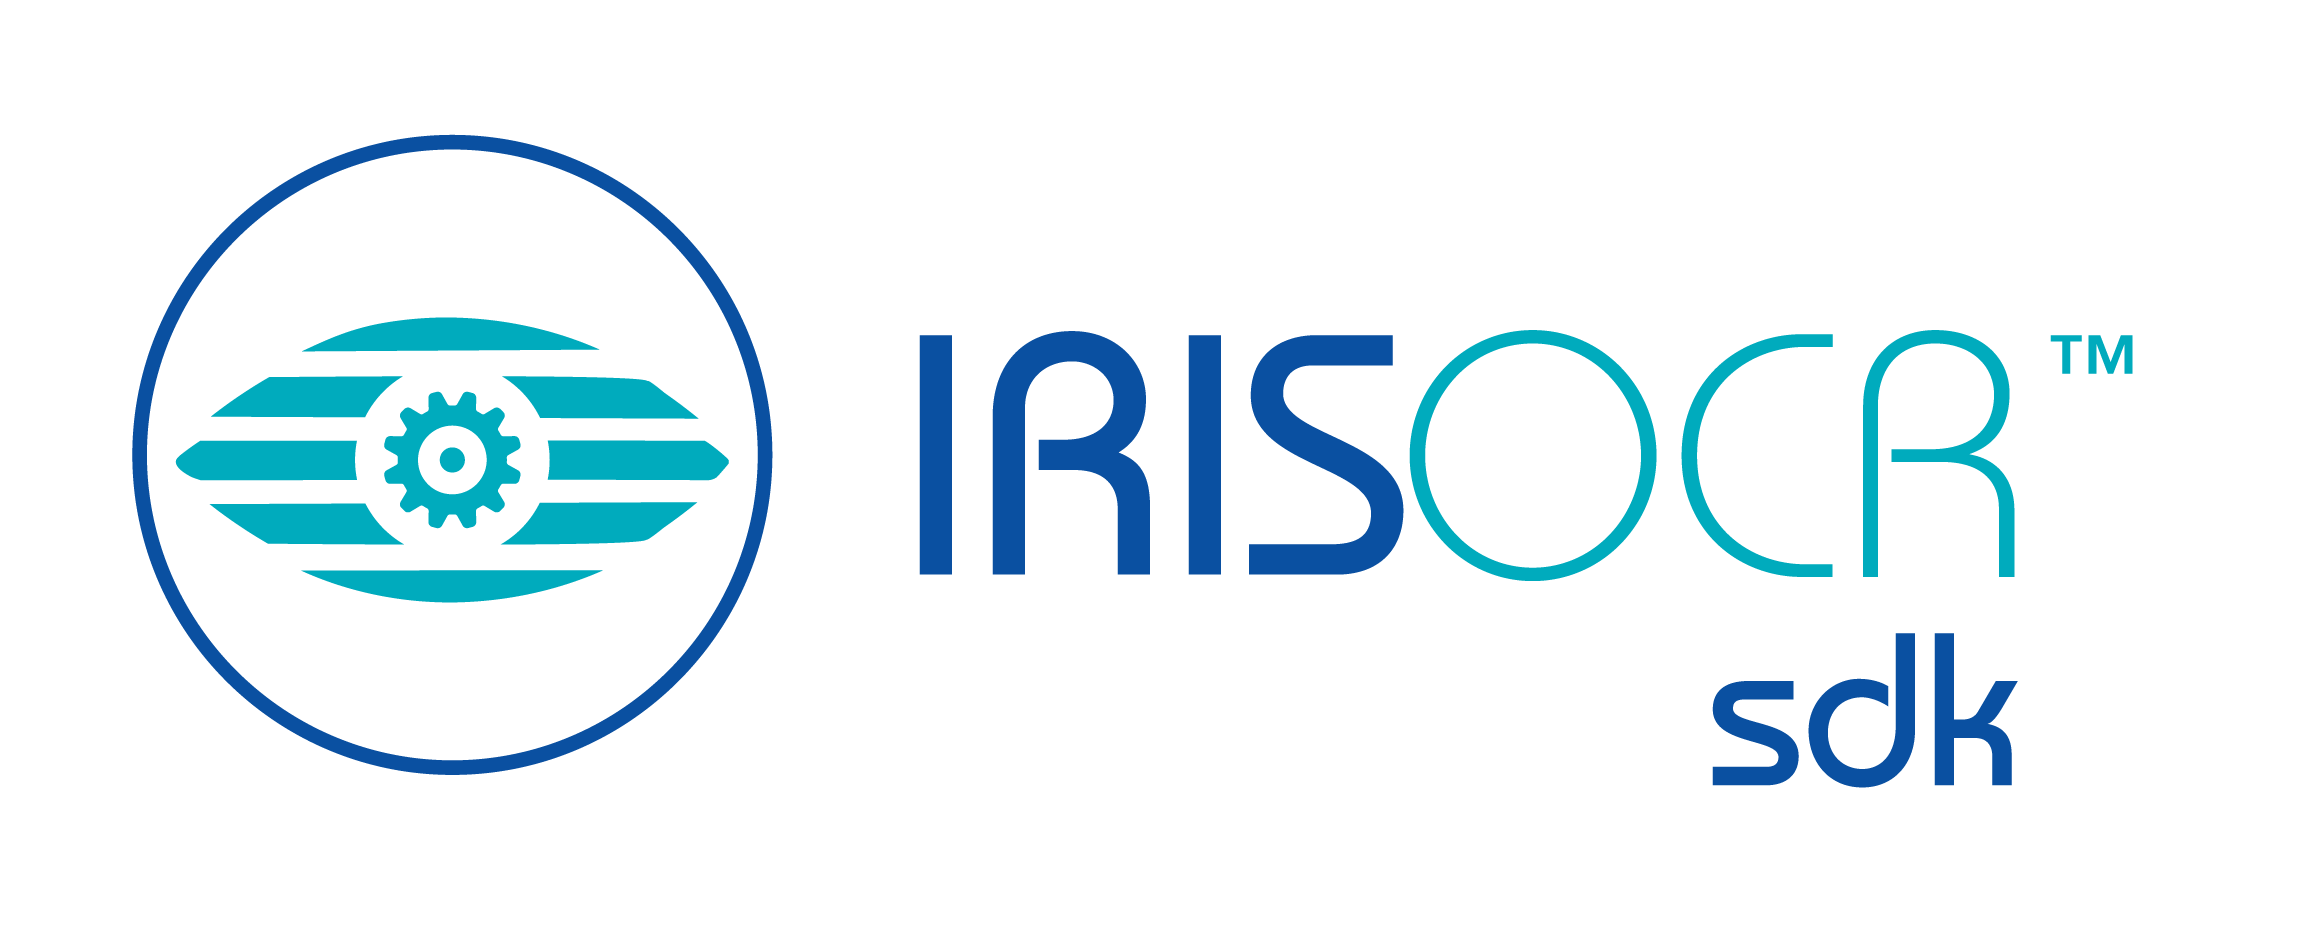 Logo IRISOCR-iDRS Toolkit